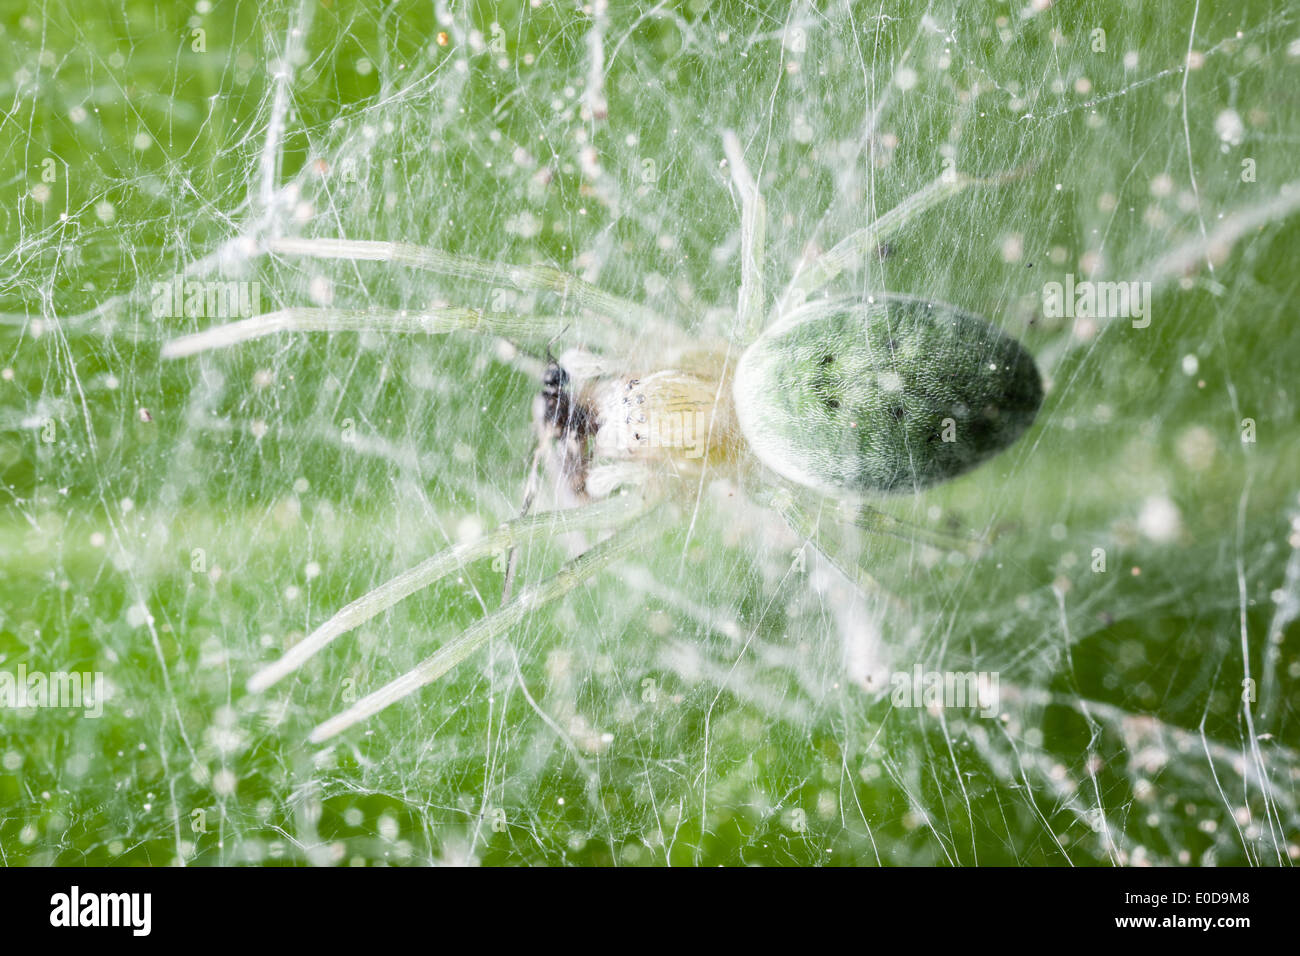 Nigma walckenaeri; a green cribellate spider up to five millimetres long, the largest of the family Dictynidae - Stock Image